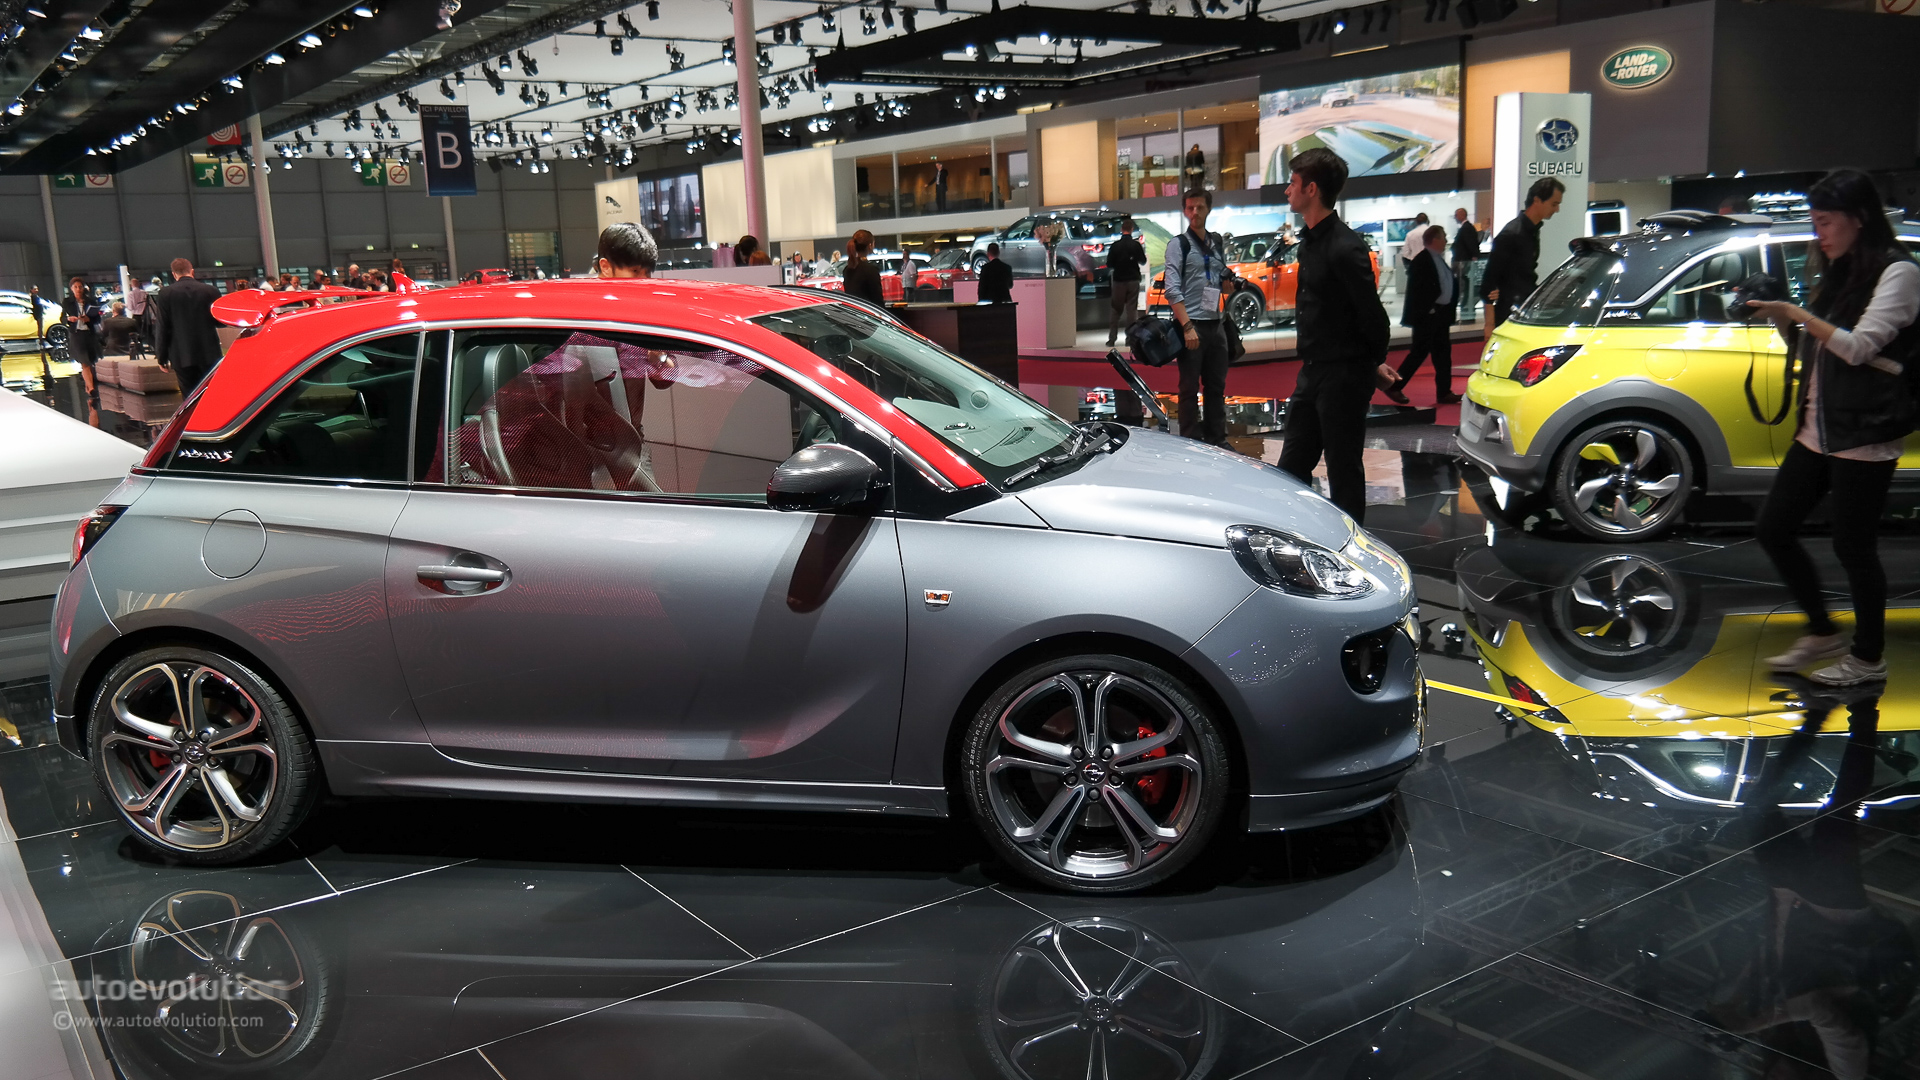 opel vauxhall adam s debuts in paris small in size big on power live photos autoevolution. Black Bedroom Furniture Sets. Home Design Ideas